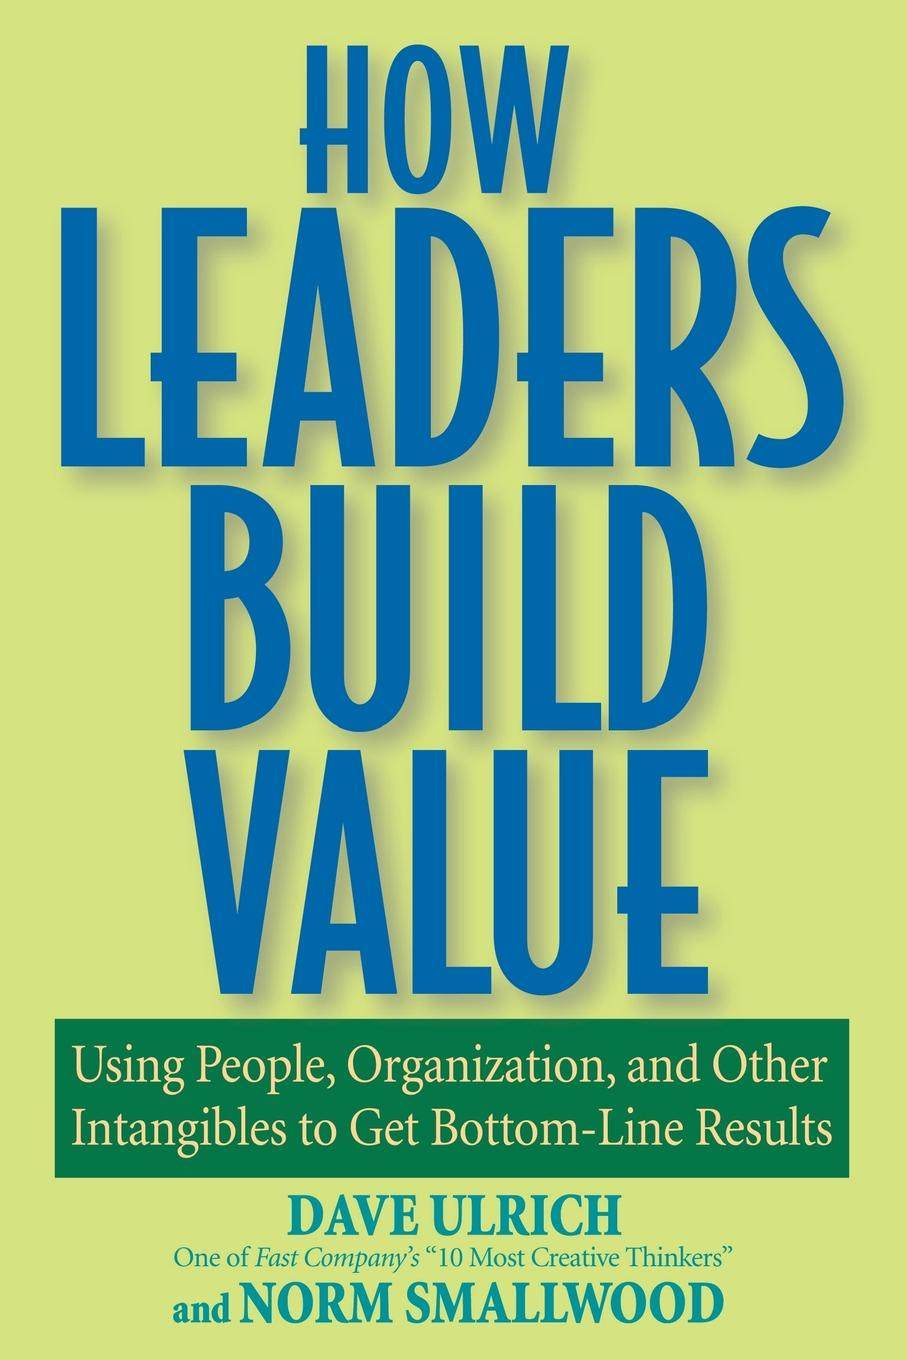 Dave Ulrich, Norman Smallwood How Leaders Build Value. Using People, Organization, and Other Intangibles to Get Bottom-Line Results dave ulrich why the bottom line isn t how to build value through people and organization